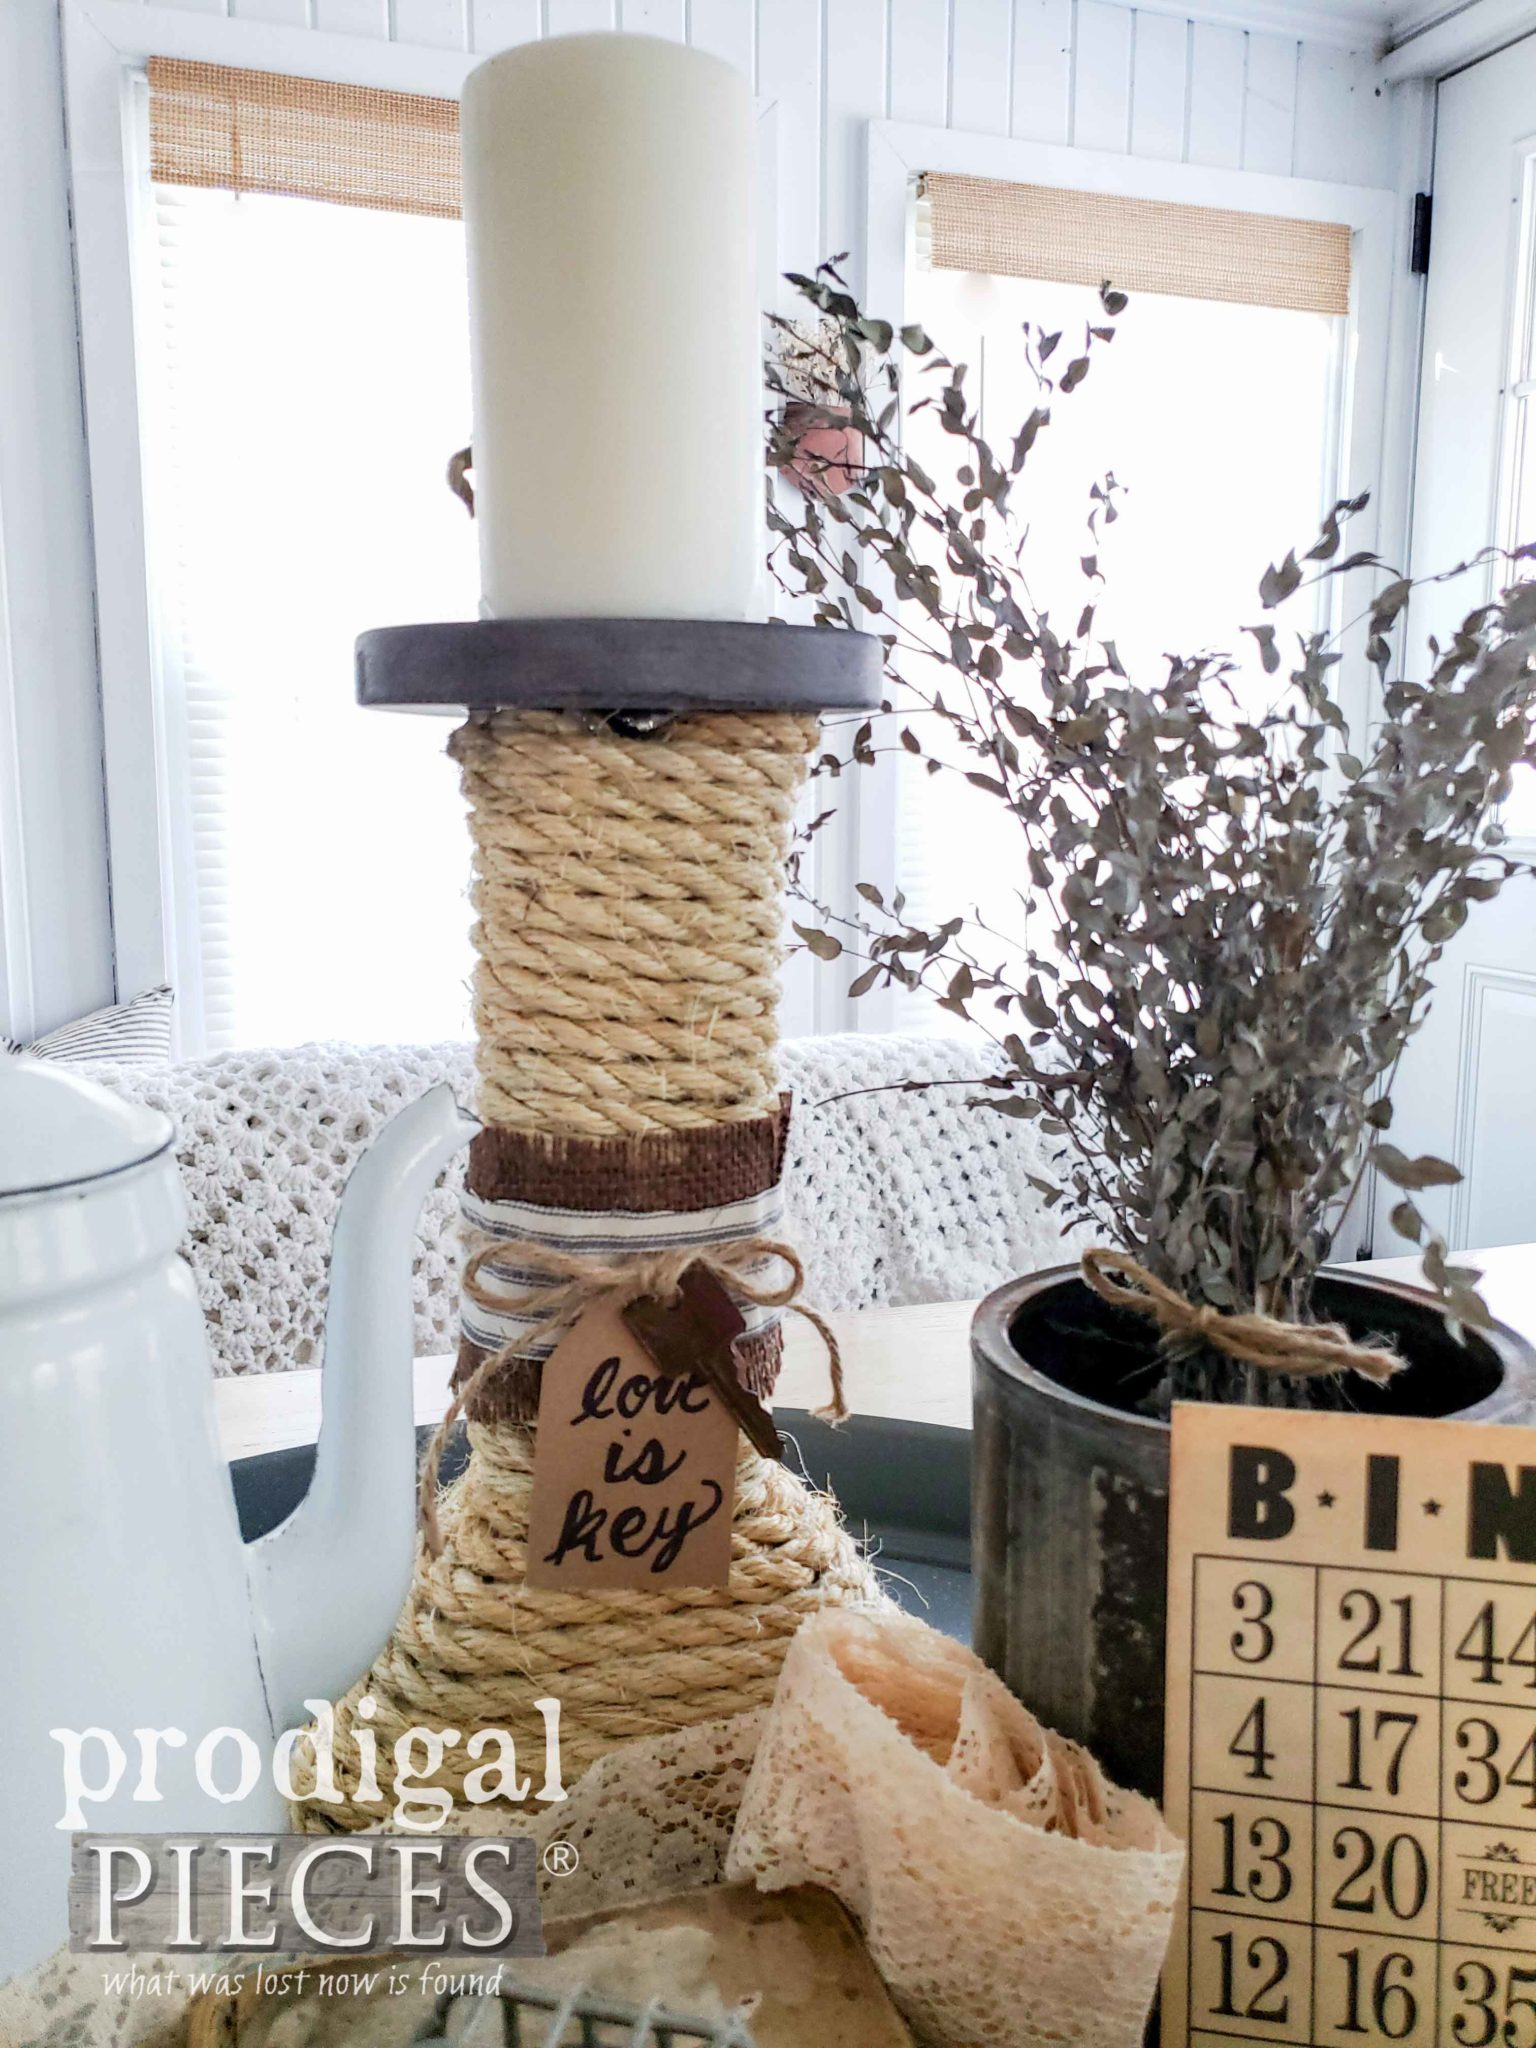 Create a Vintage Style Farmhouse Vignette using Thrifted Finds and a DIY spirit | A video tutorial by Larissa of Prodigal Pieces | prodigalpieces.com